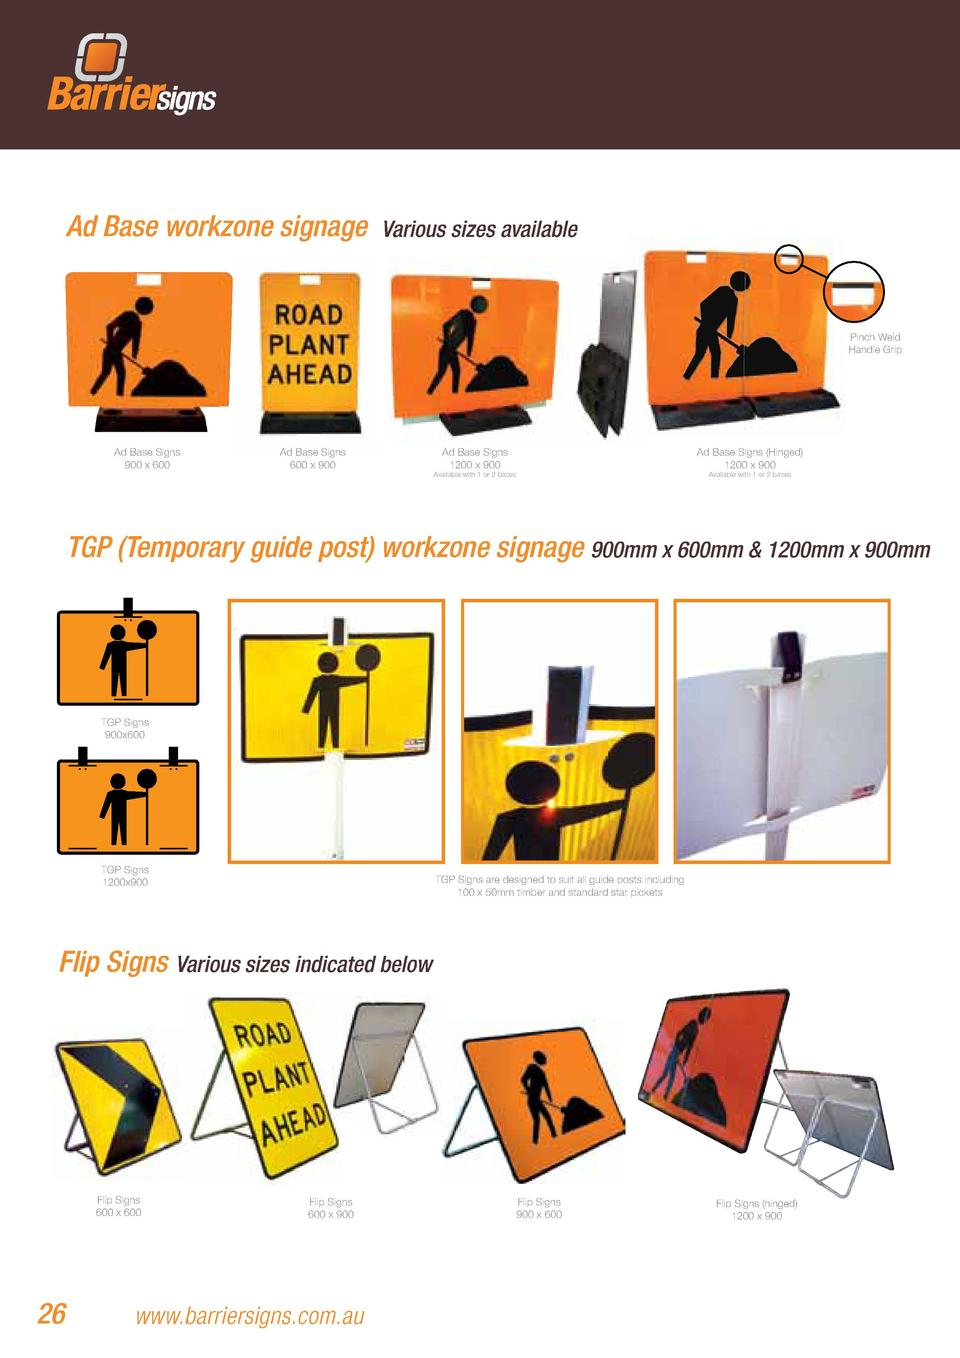 Ad Base workzone signage  Various sizes available  Pinch Weld Handle Grip  Ad Base Signs 900 x 600  Ad Base Signs 600 x 90...